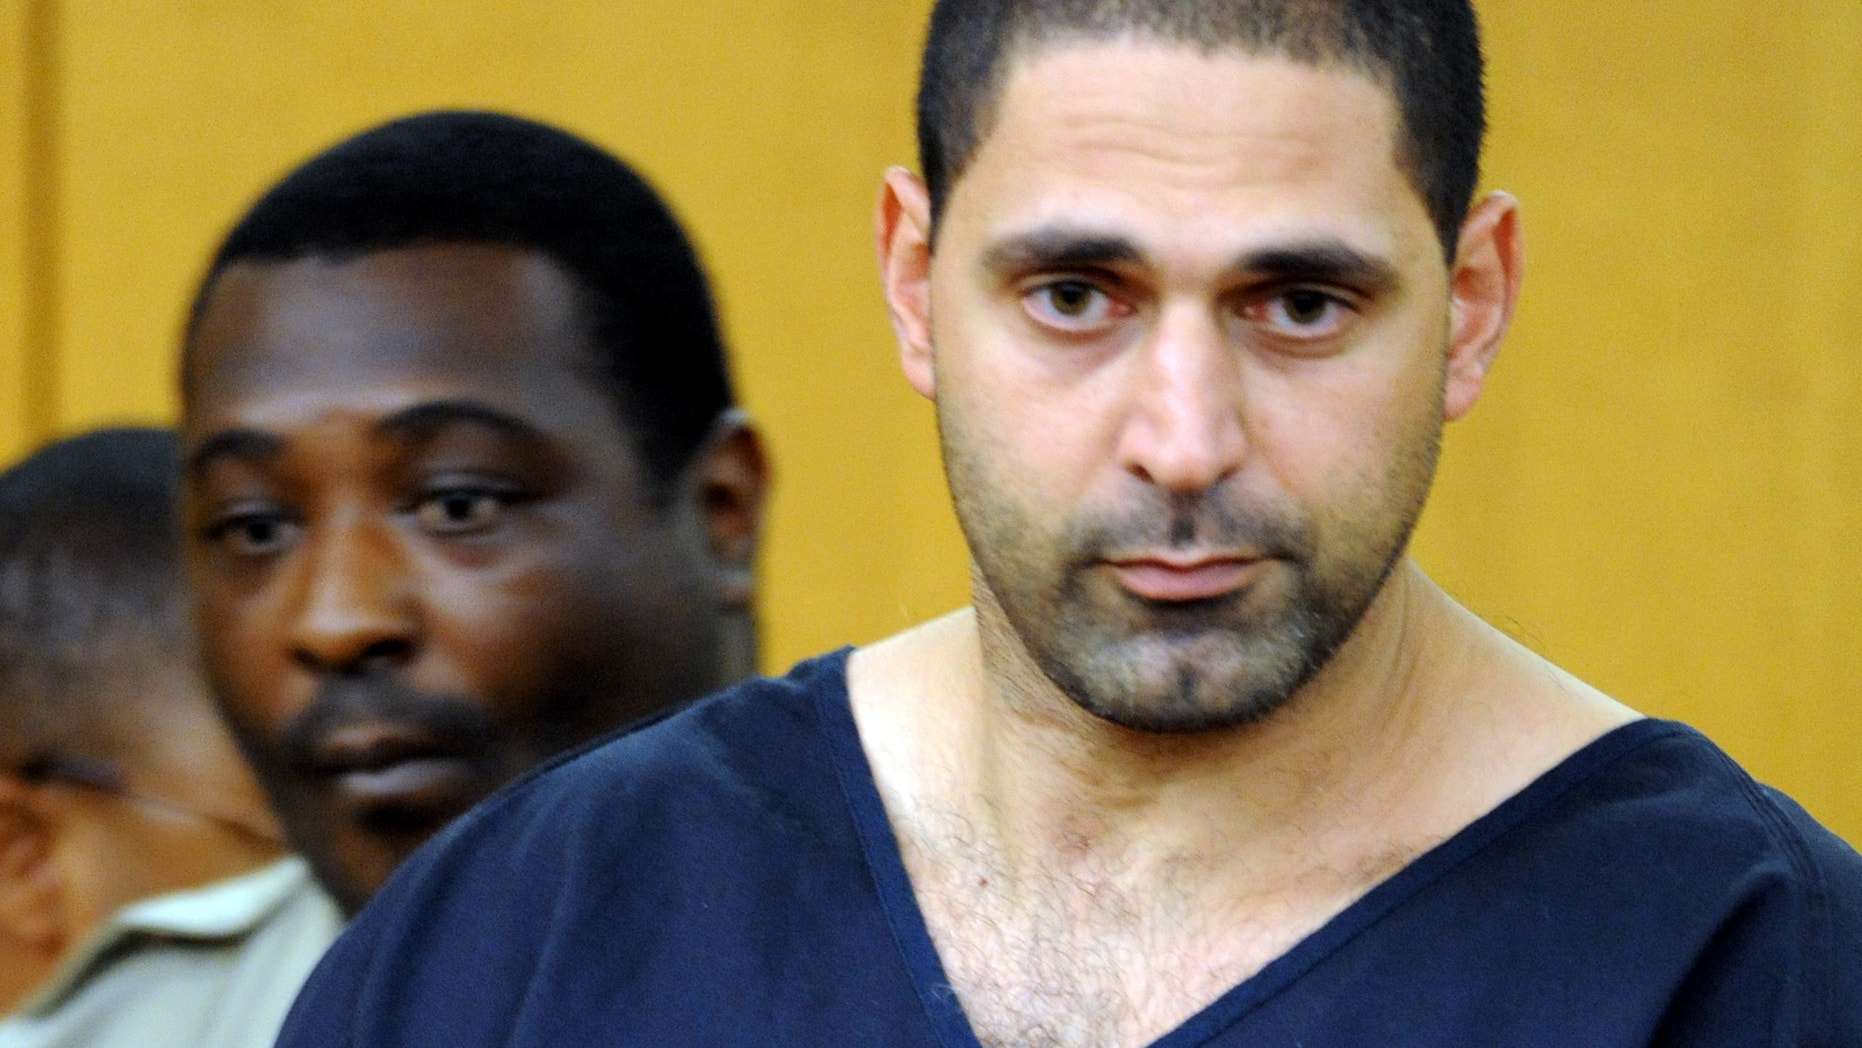 In this Aug. 13, 2010 file photo, Elias Abuelazam attends an extradition hearing in Fulton County Superior Court in Atlanta.